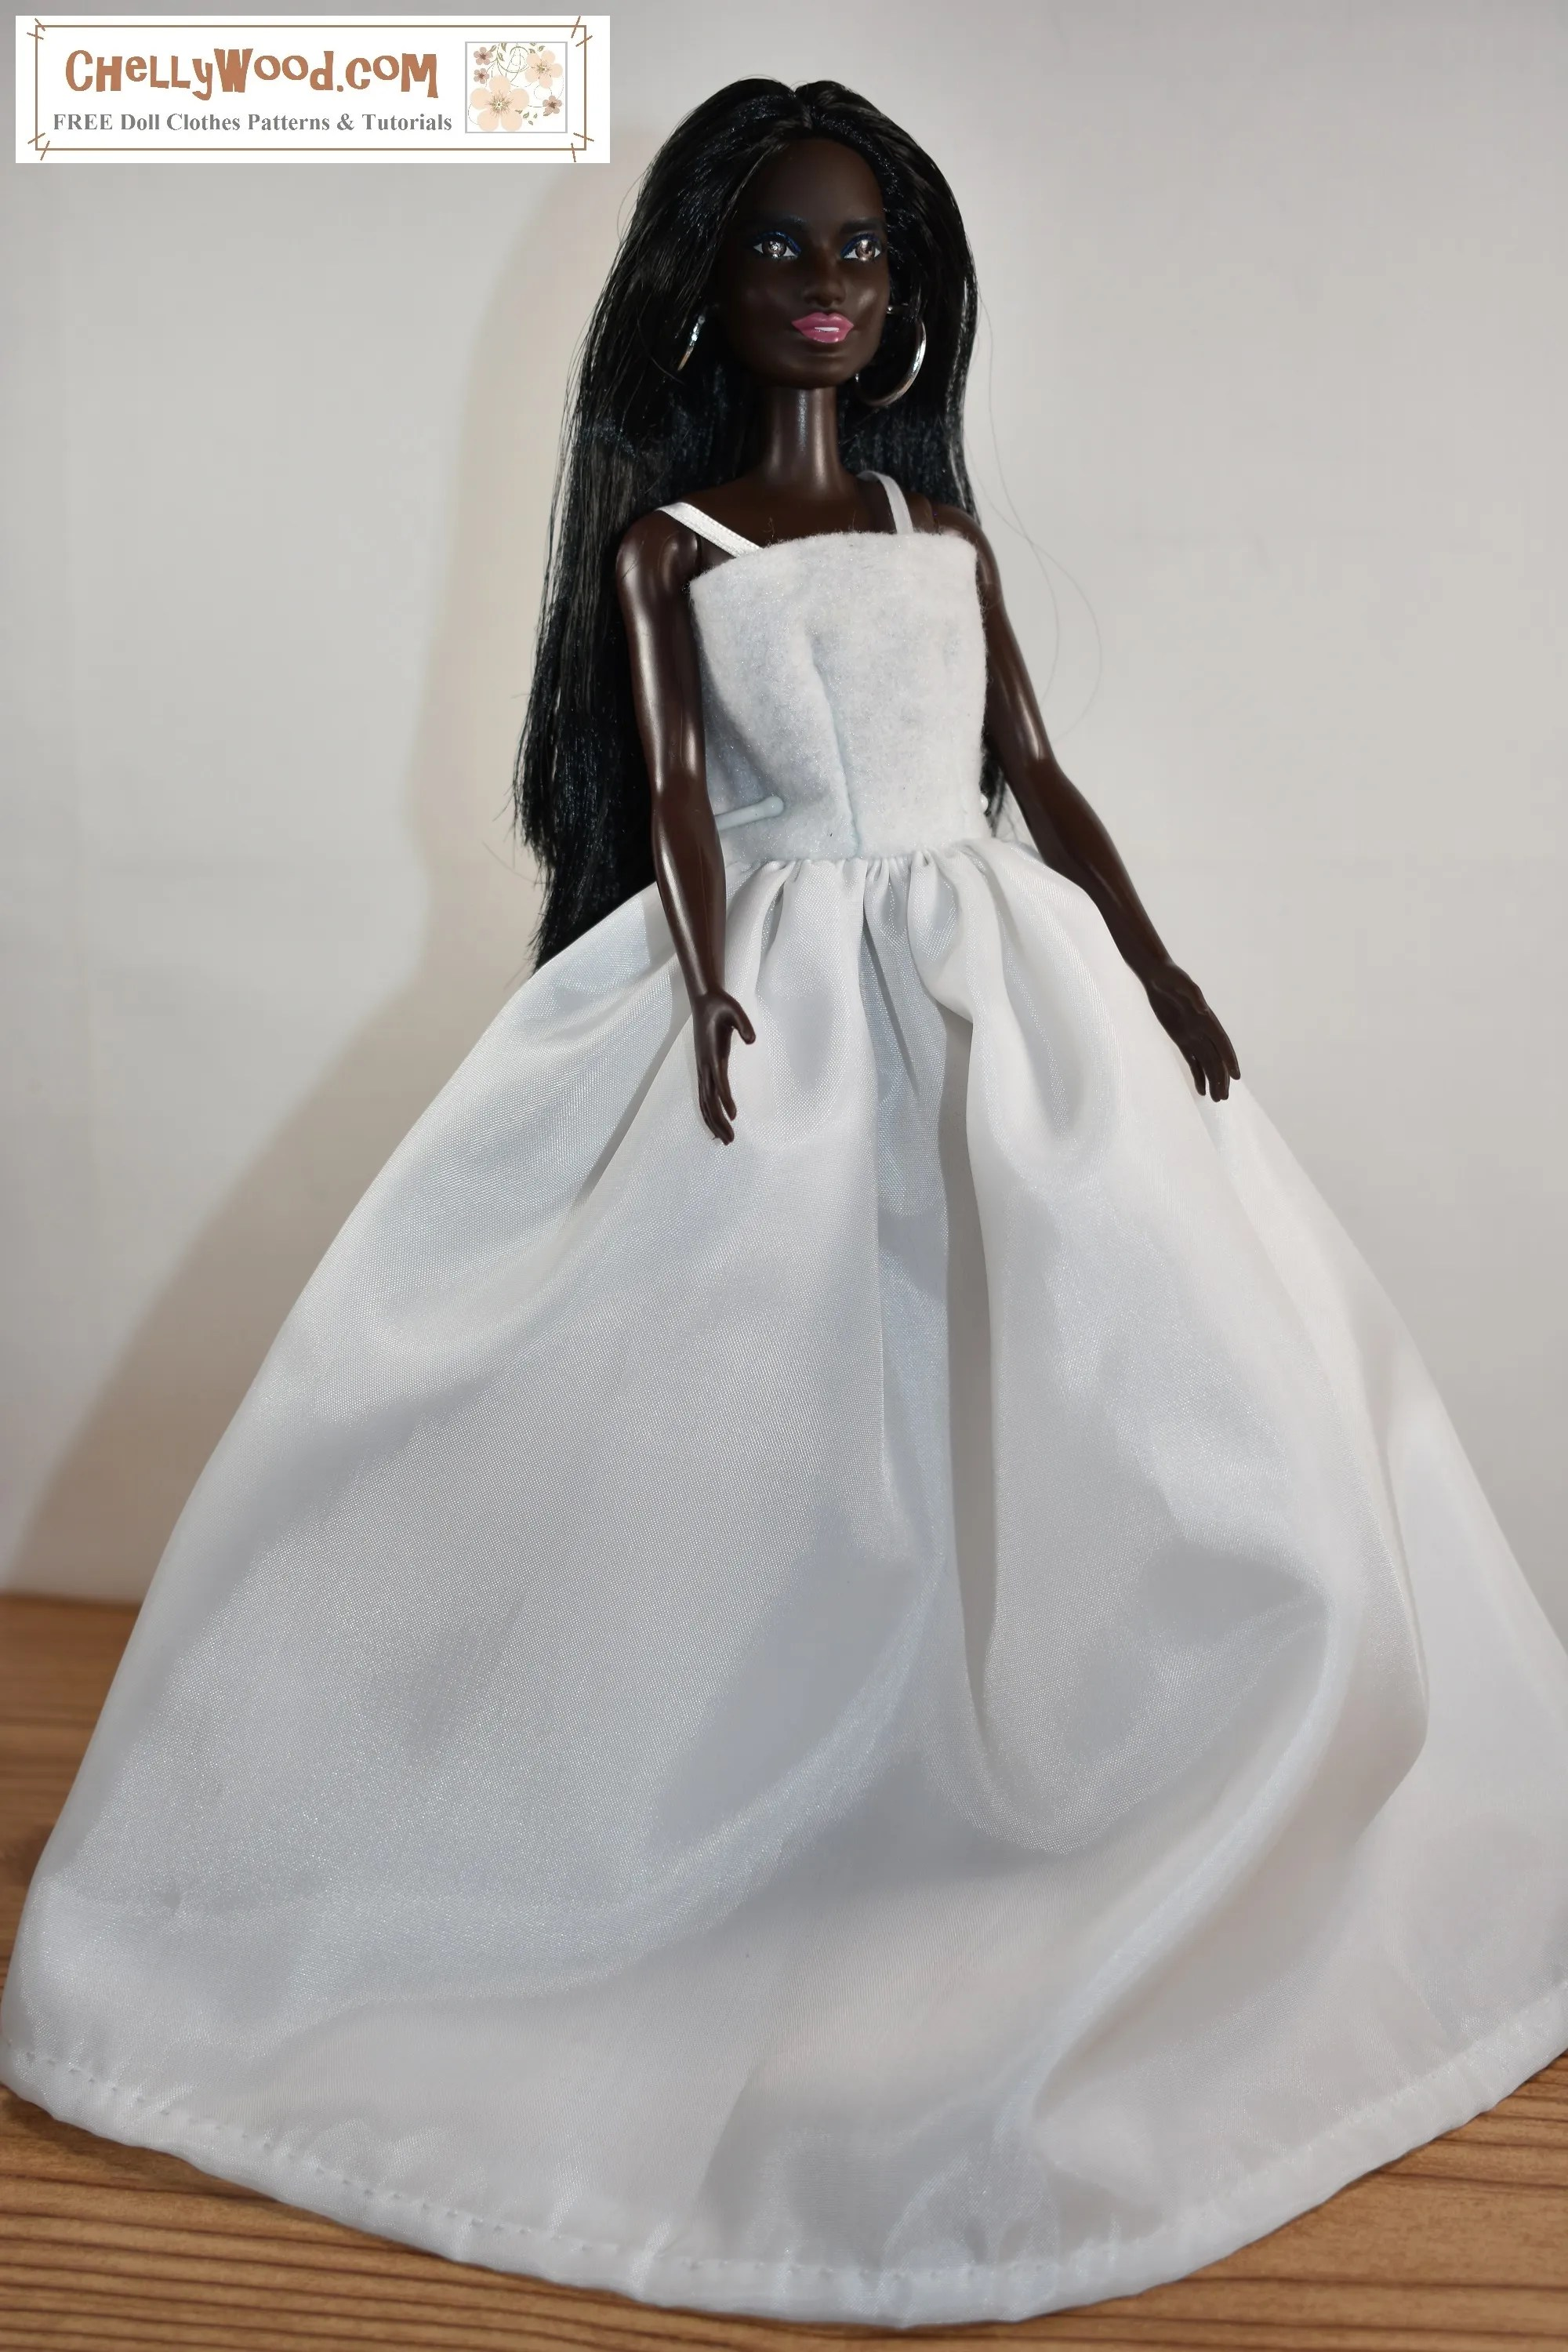 Free Barbie Wedding Dress Patterns And Tutorial Chellywood Com Junewedding Maidofhonor Free Doll Clothes Patterns